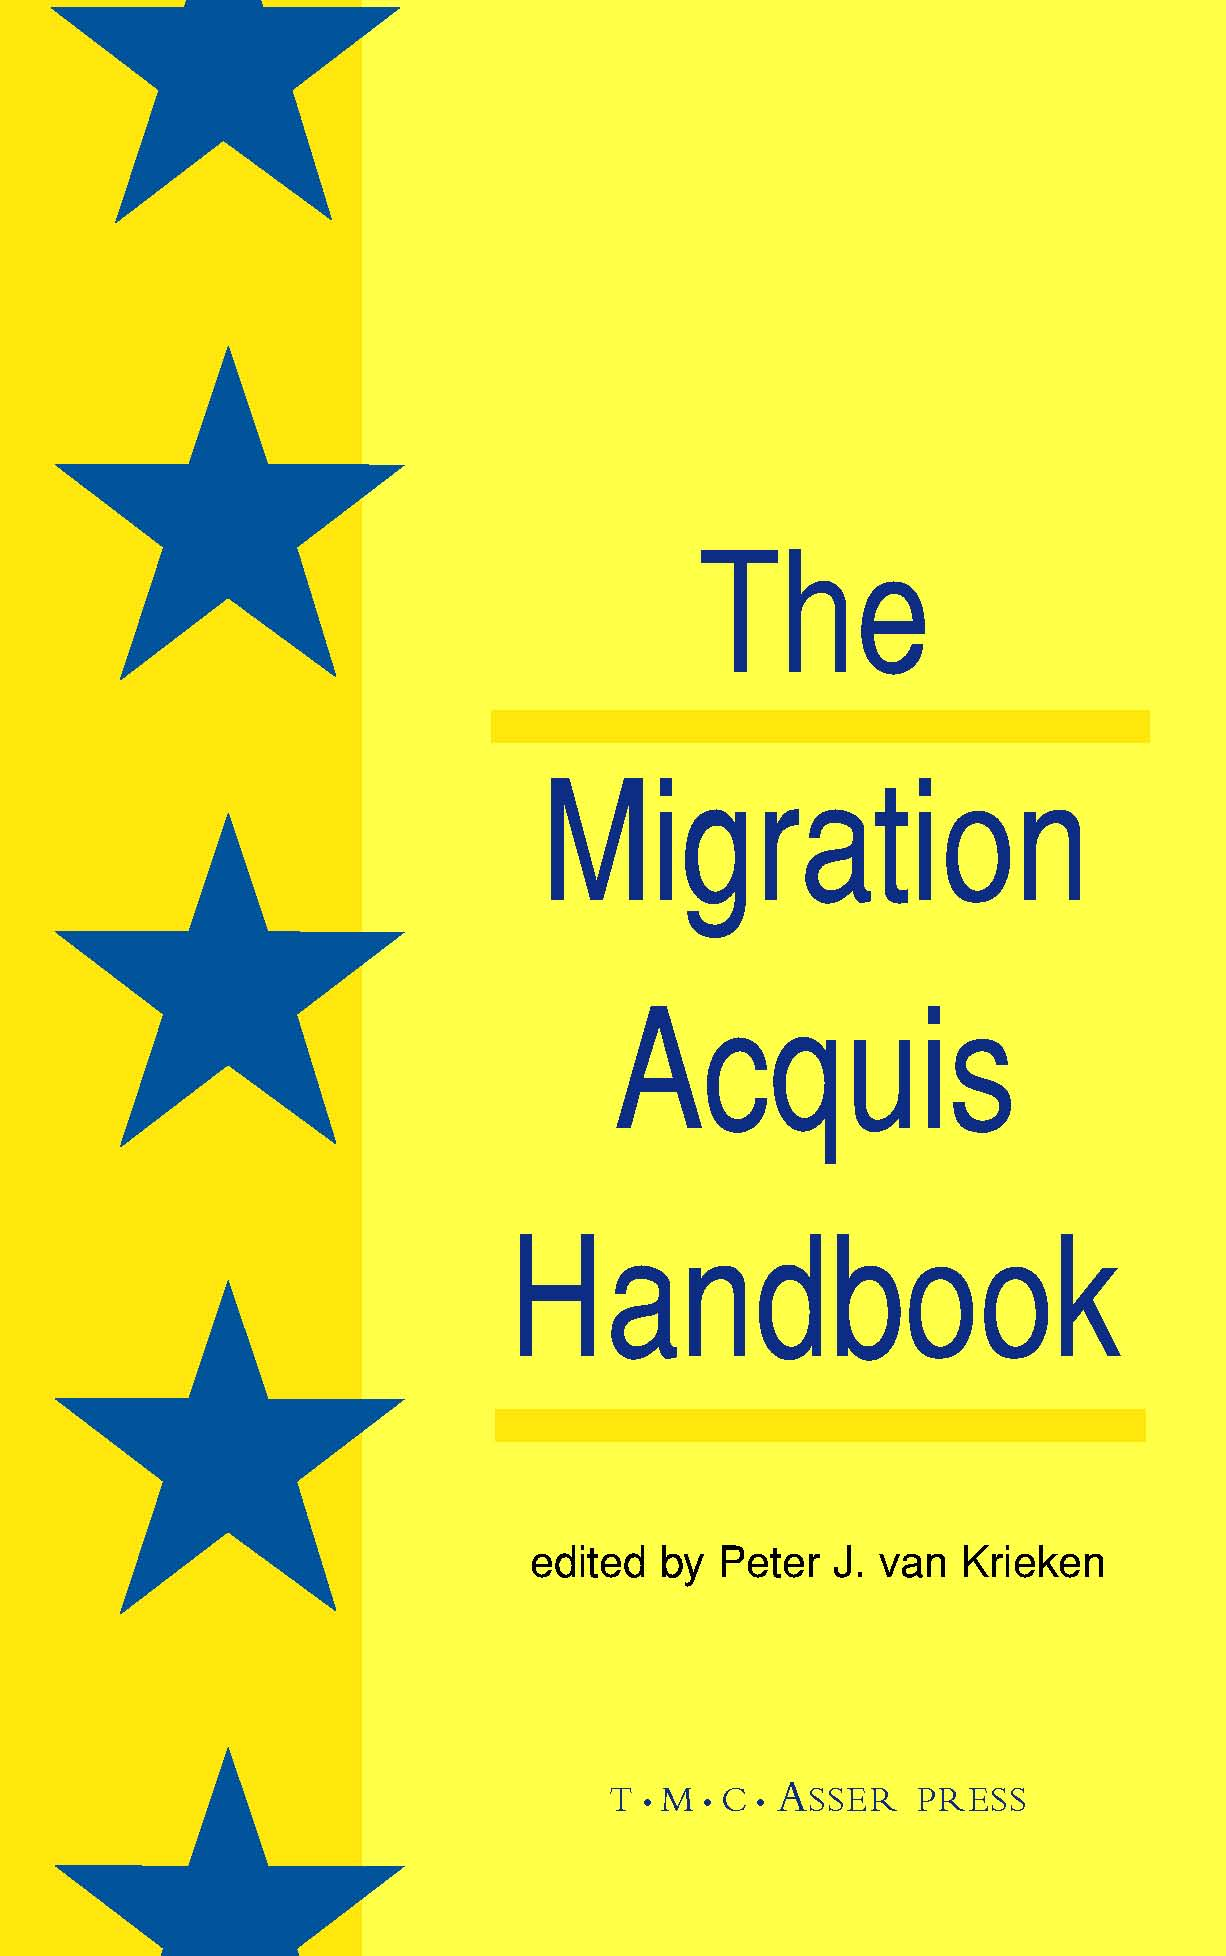 The Migration Acquis Handbook - The Foundation for a Common European Migration Policy